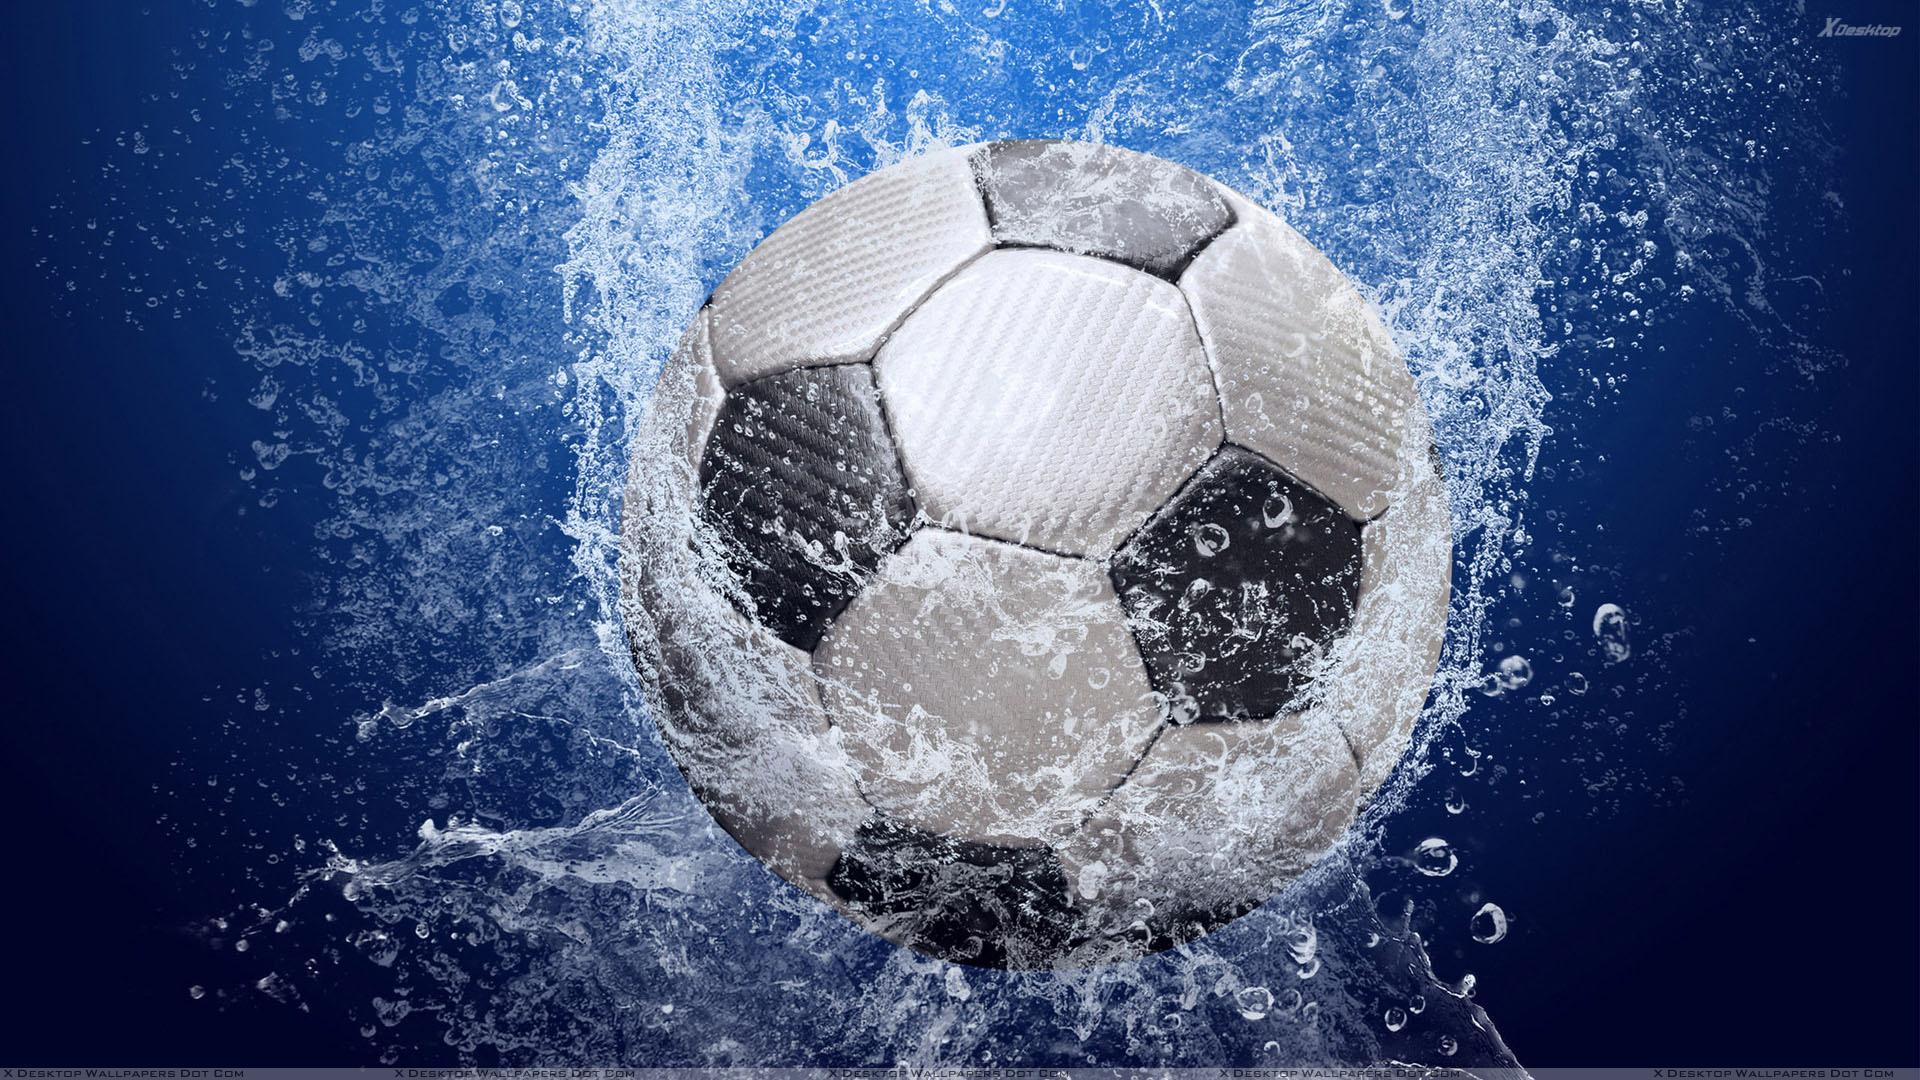 Football In Water And Blue Baclground Wallpaper